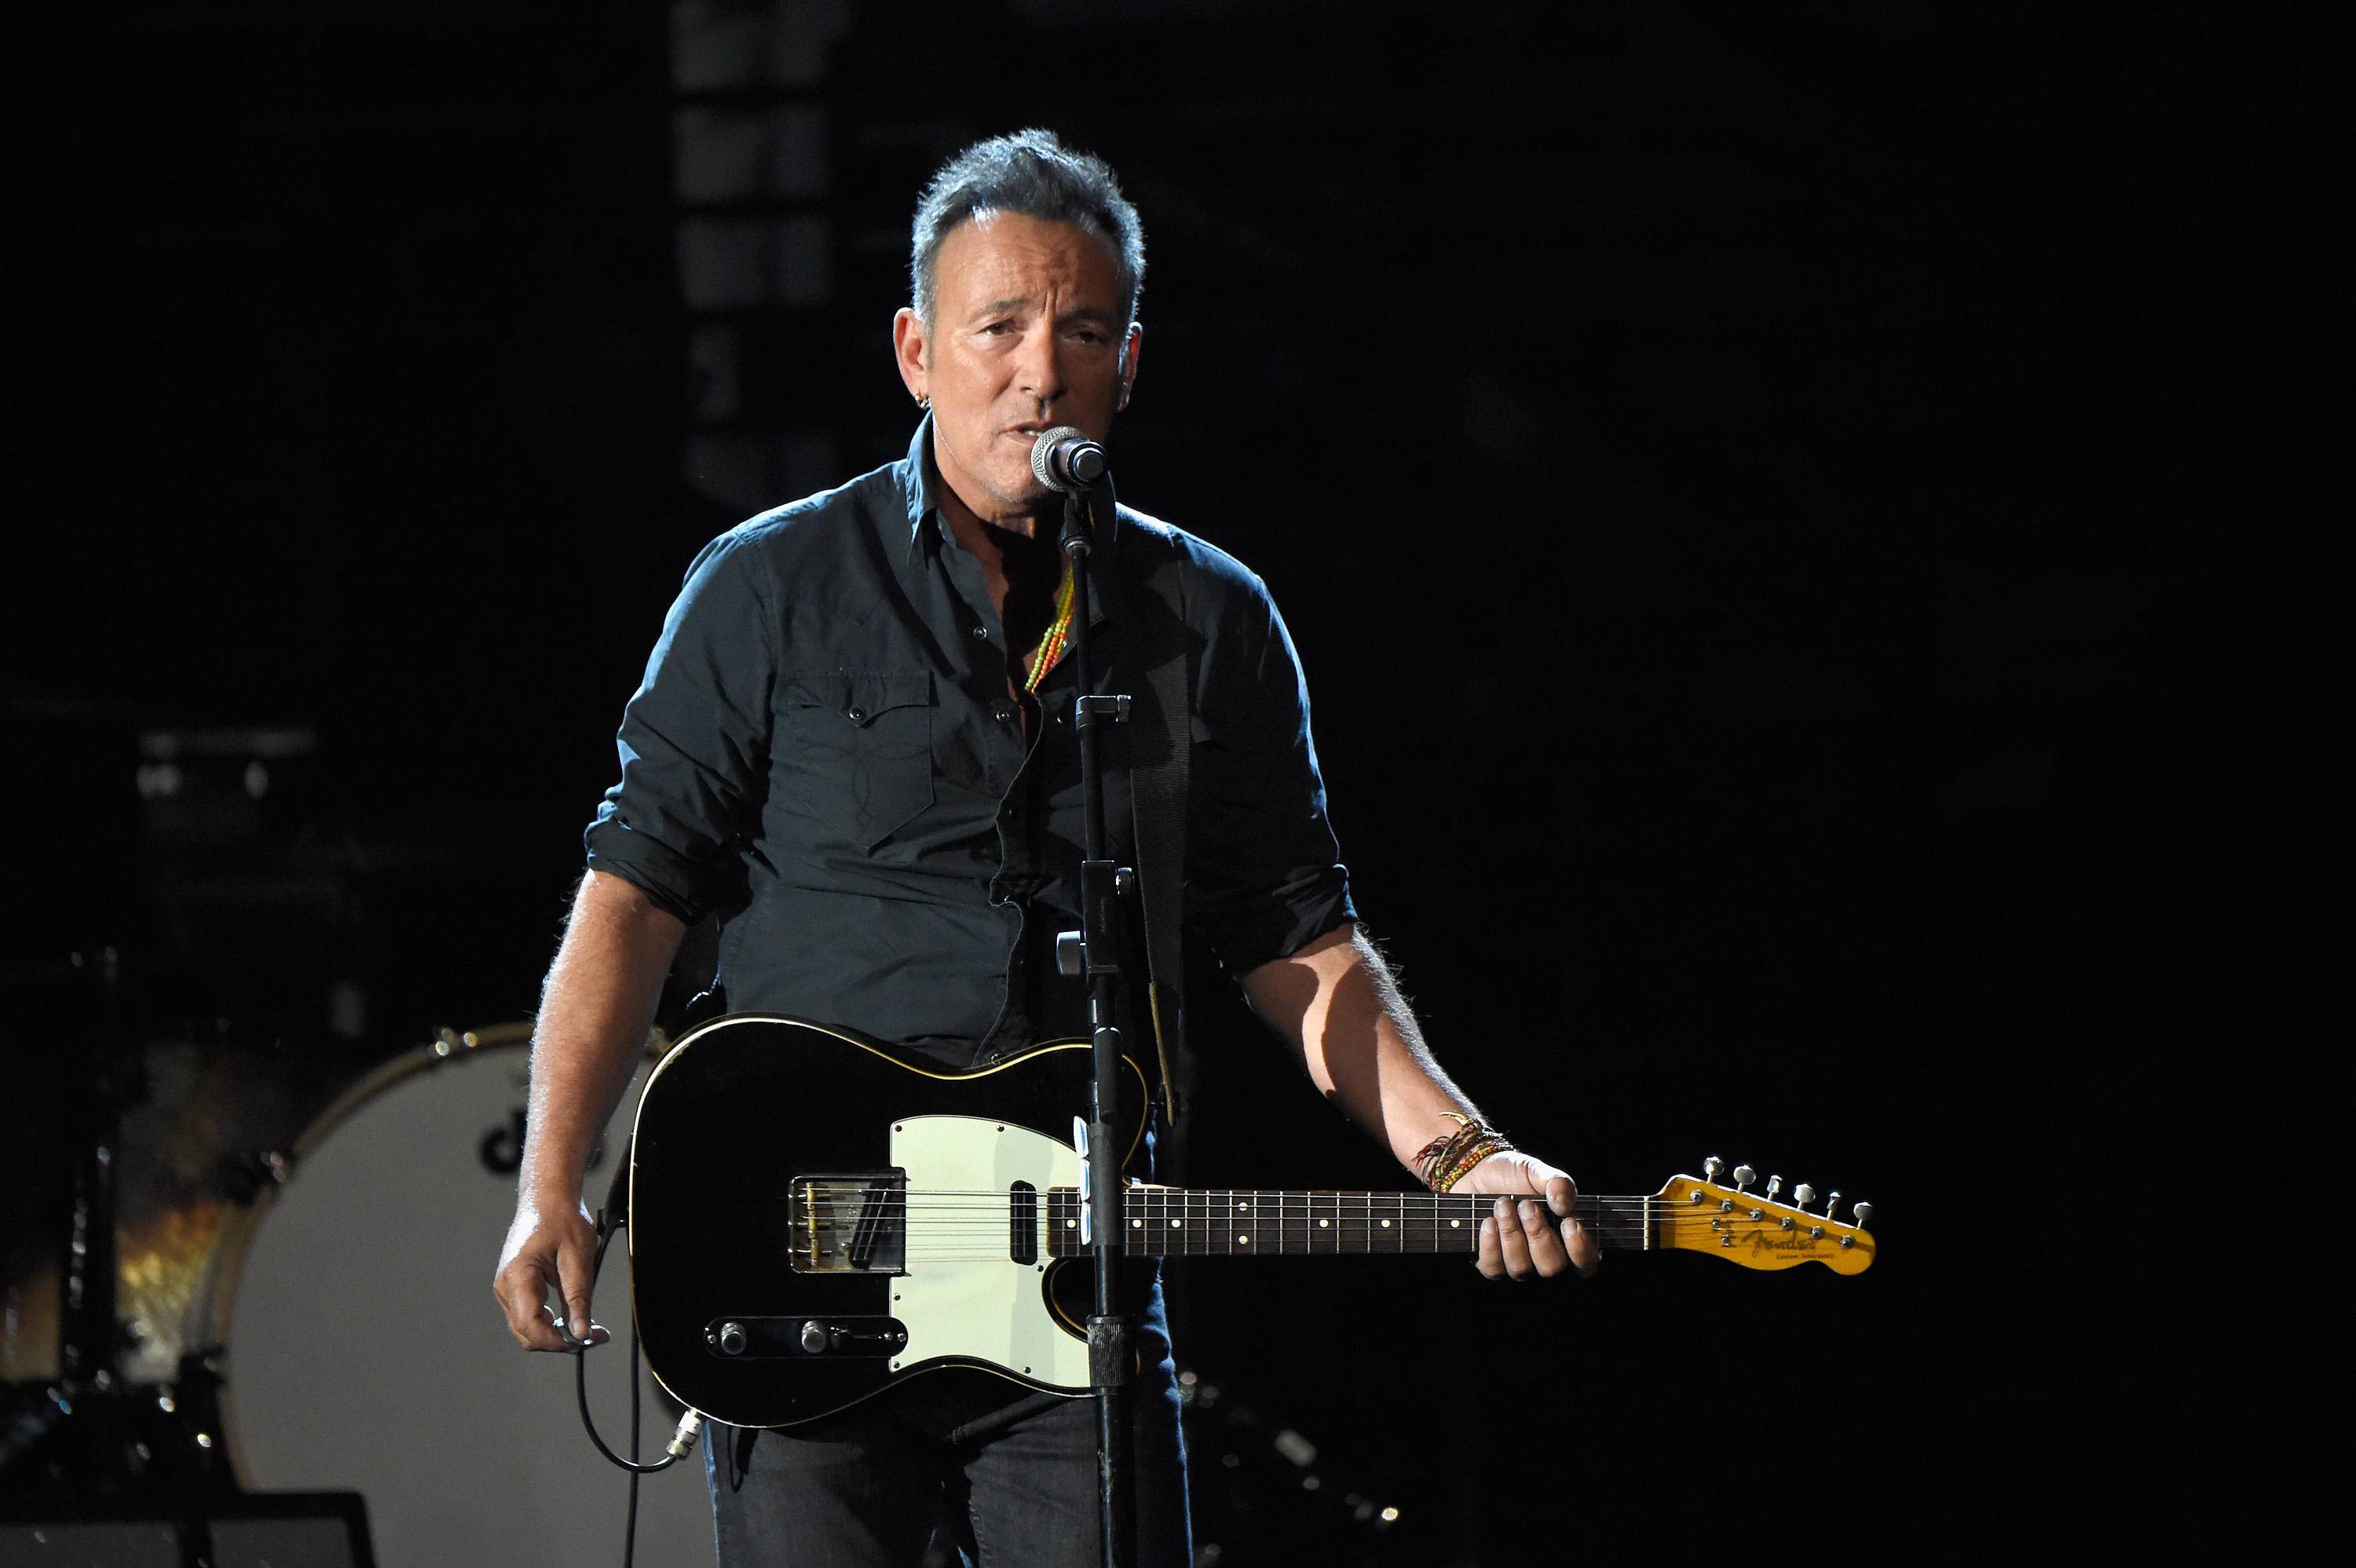 Bruce Springsteen live am 18. November in Los Angeles